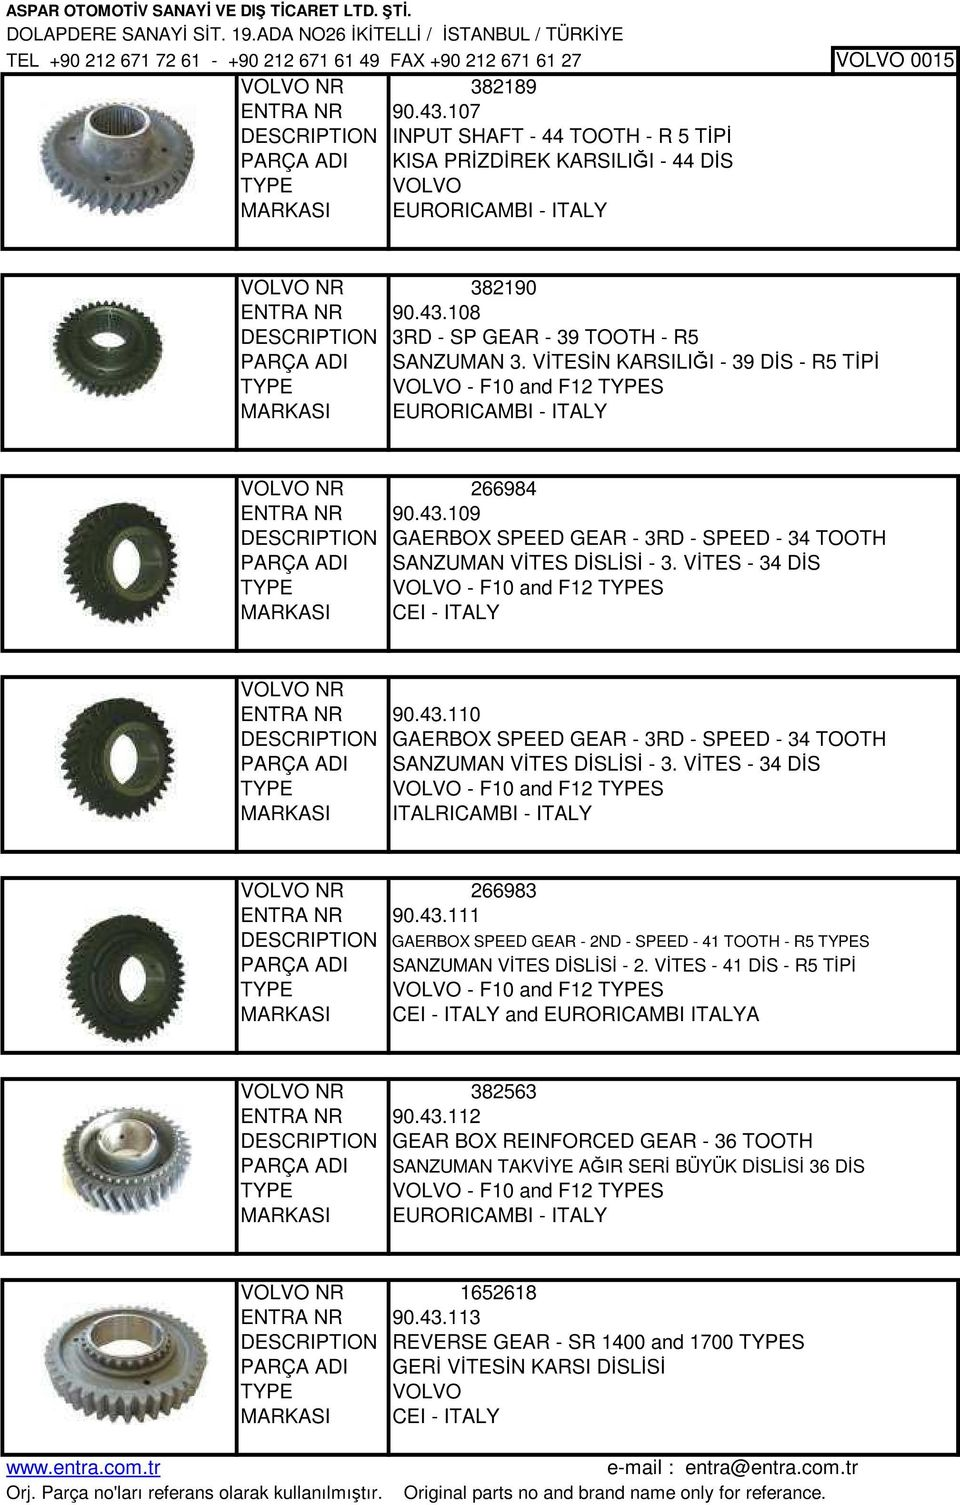 108 DESCRIPTION 3RD - SP GEAR - 39 TOOTH - R5 PARÇA ADI SANZUMAN 3. VİTESİN KARSILIĞI - 39 DİS - R5 TİPİ TYPE VOLVO - F10 and F12 TYPES EURORICAMBI - ITALY VOLVO NR 266984 ENTRA NR 90.43.